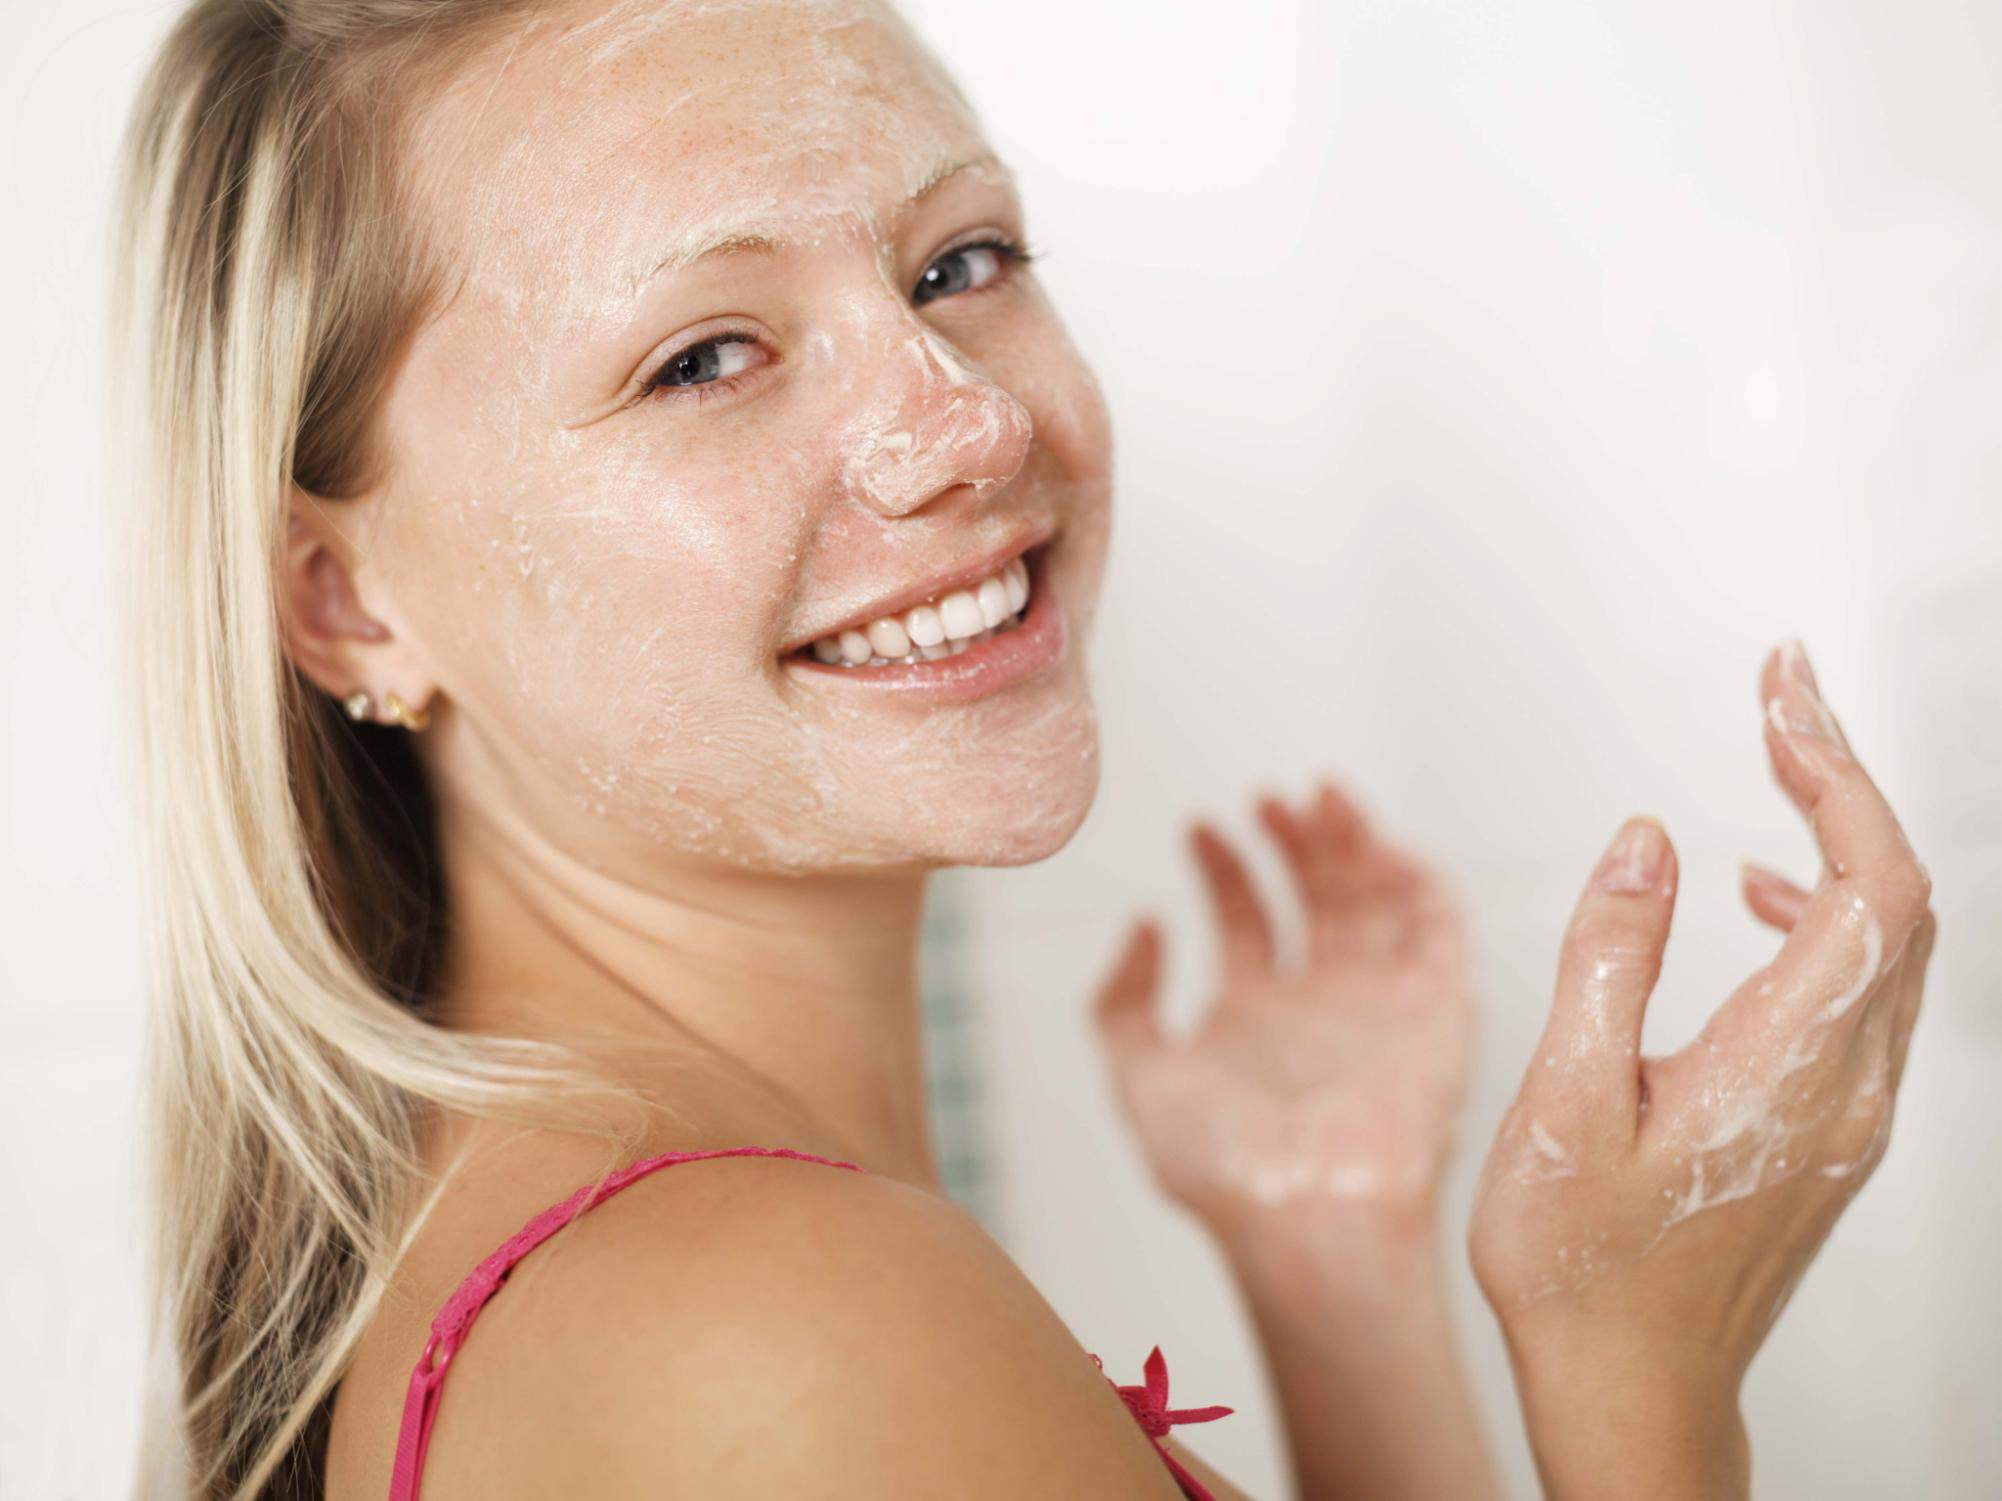 Cleansing Tips for Acne Prone Skin